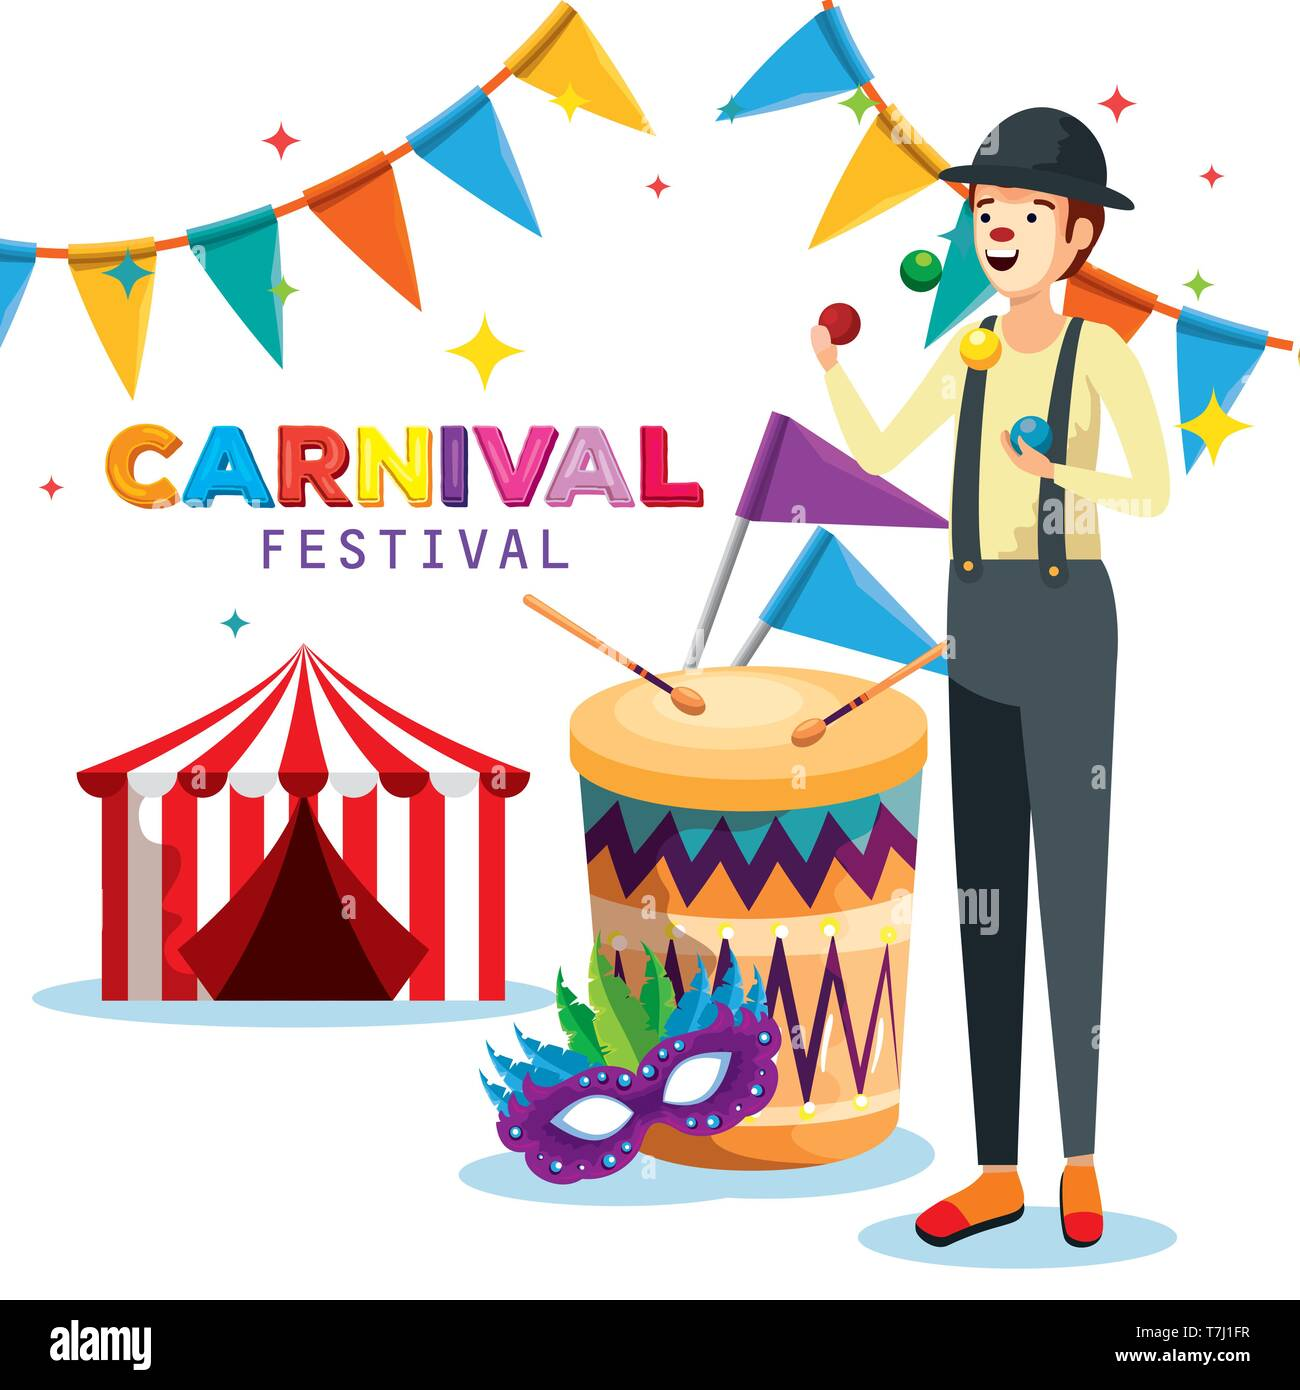 man mime with drum and party banner with circus and mask - Stock Image